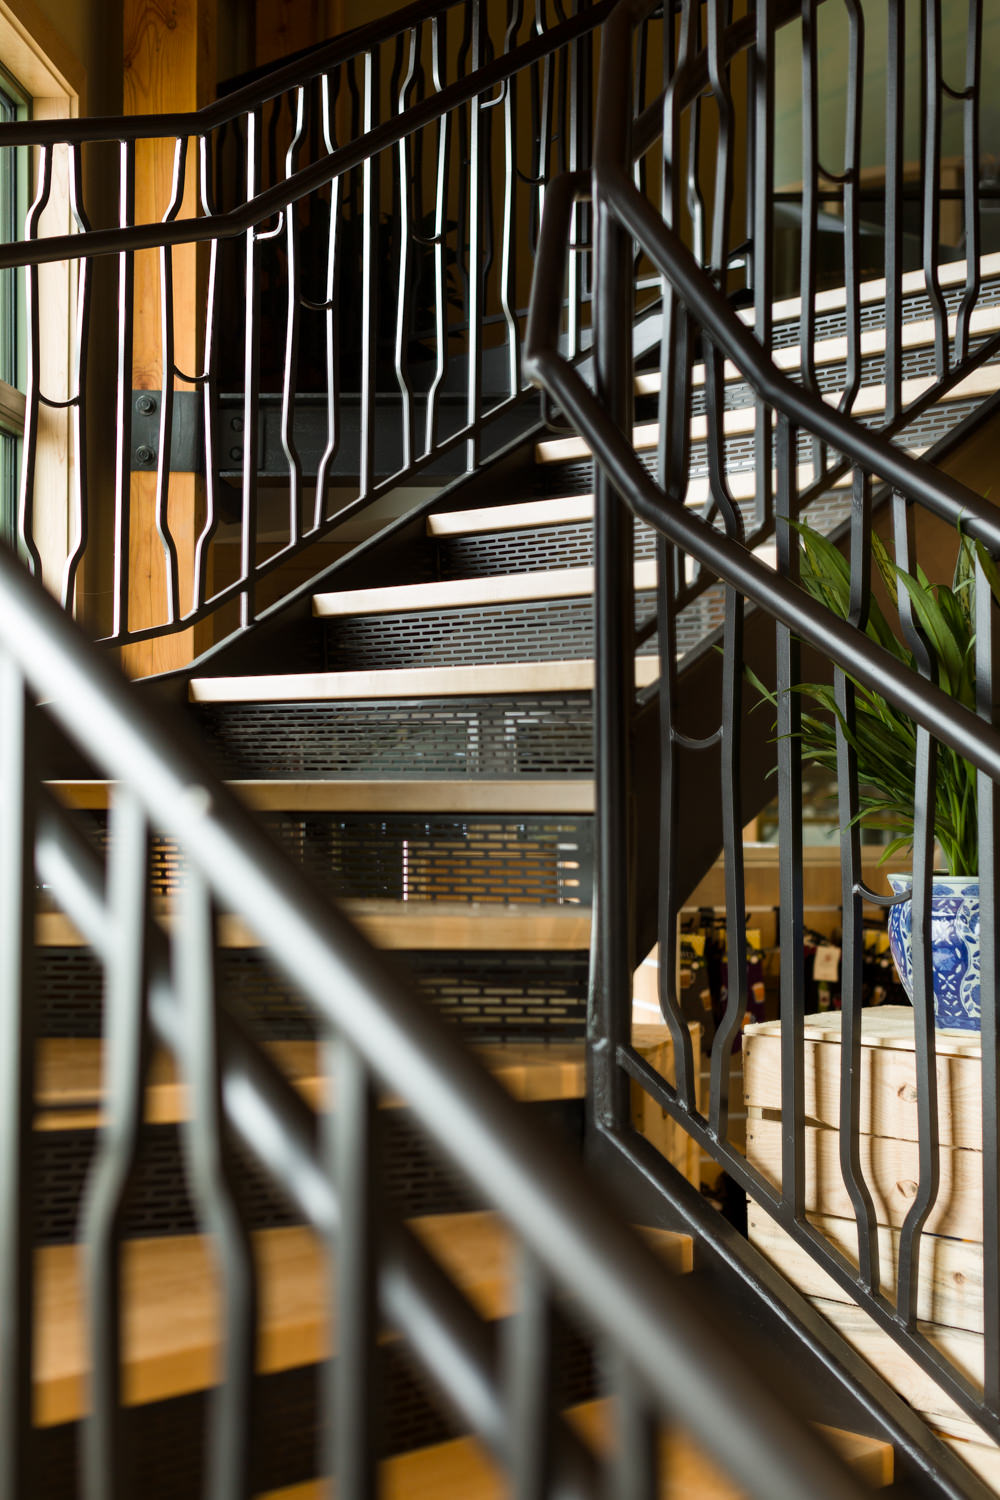 Detail photo taken by Stina Booth of the custom metal stair railing in the Trapp Brewery Bierhall in Stowe Vermont